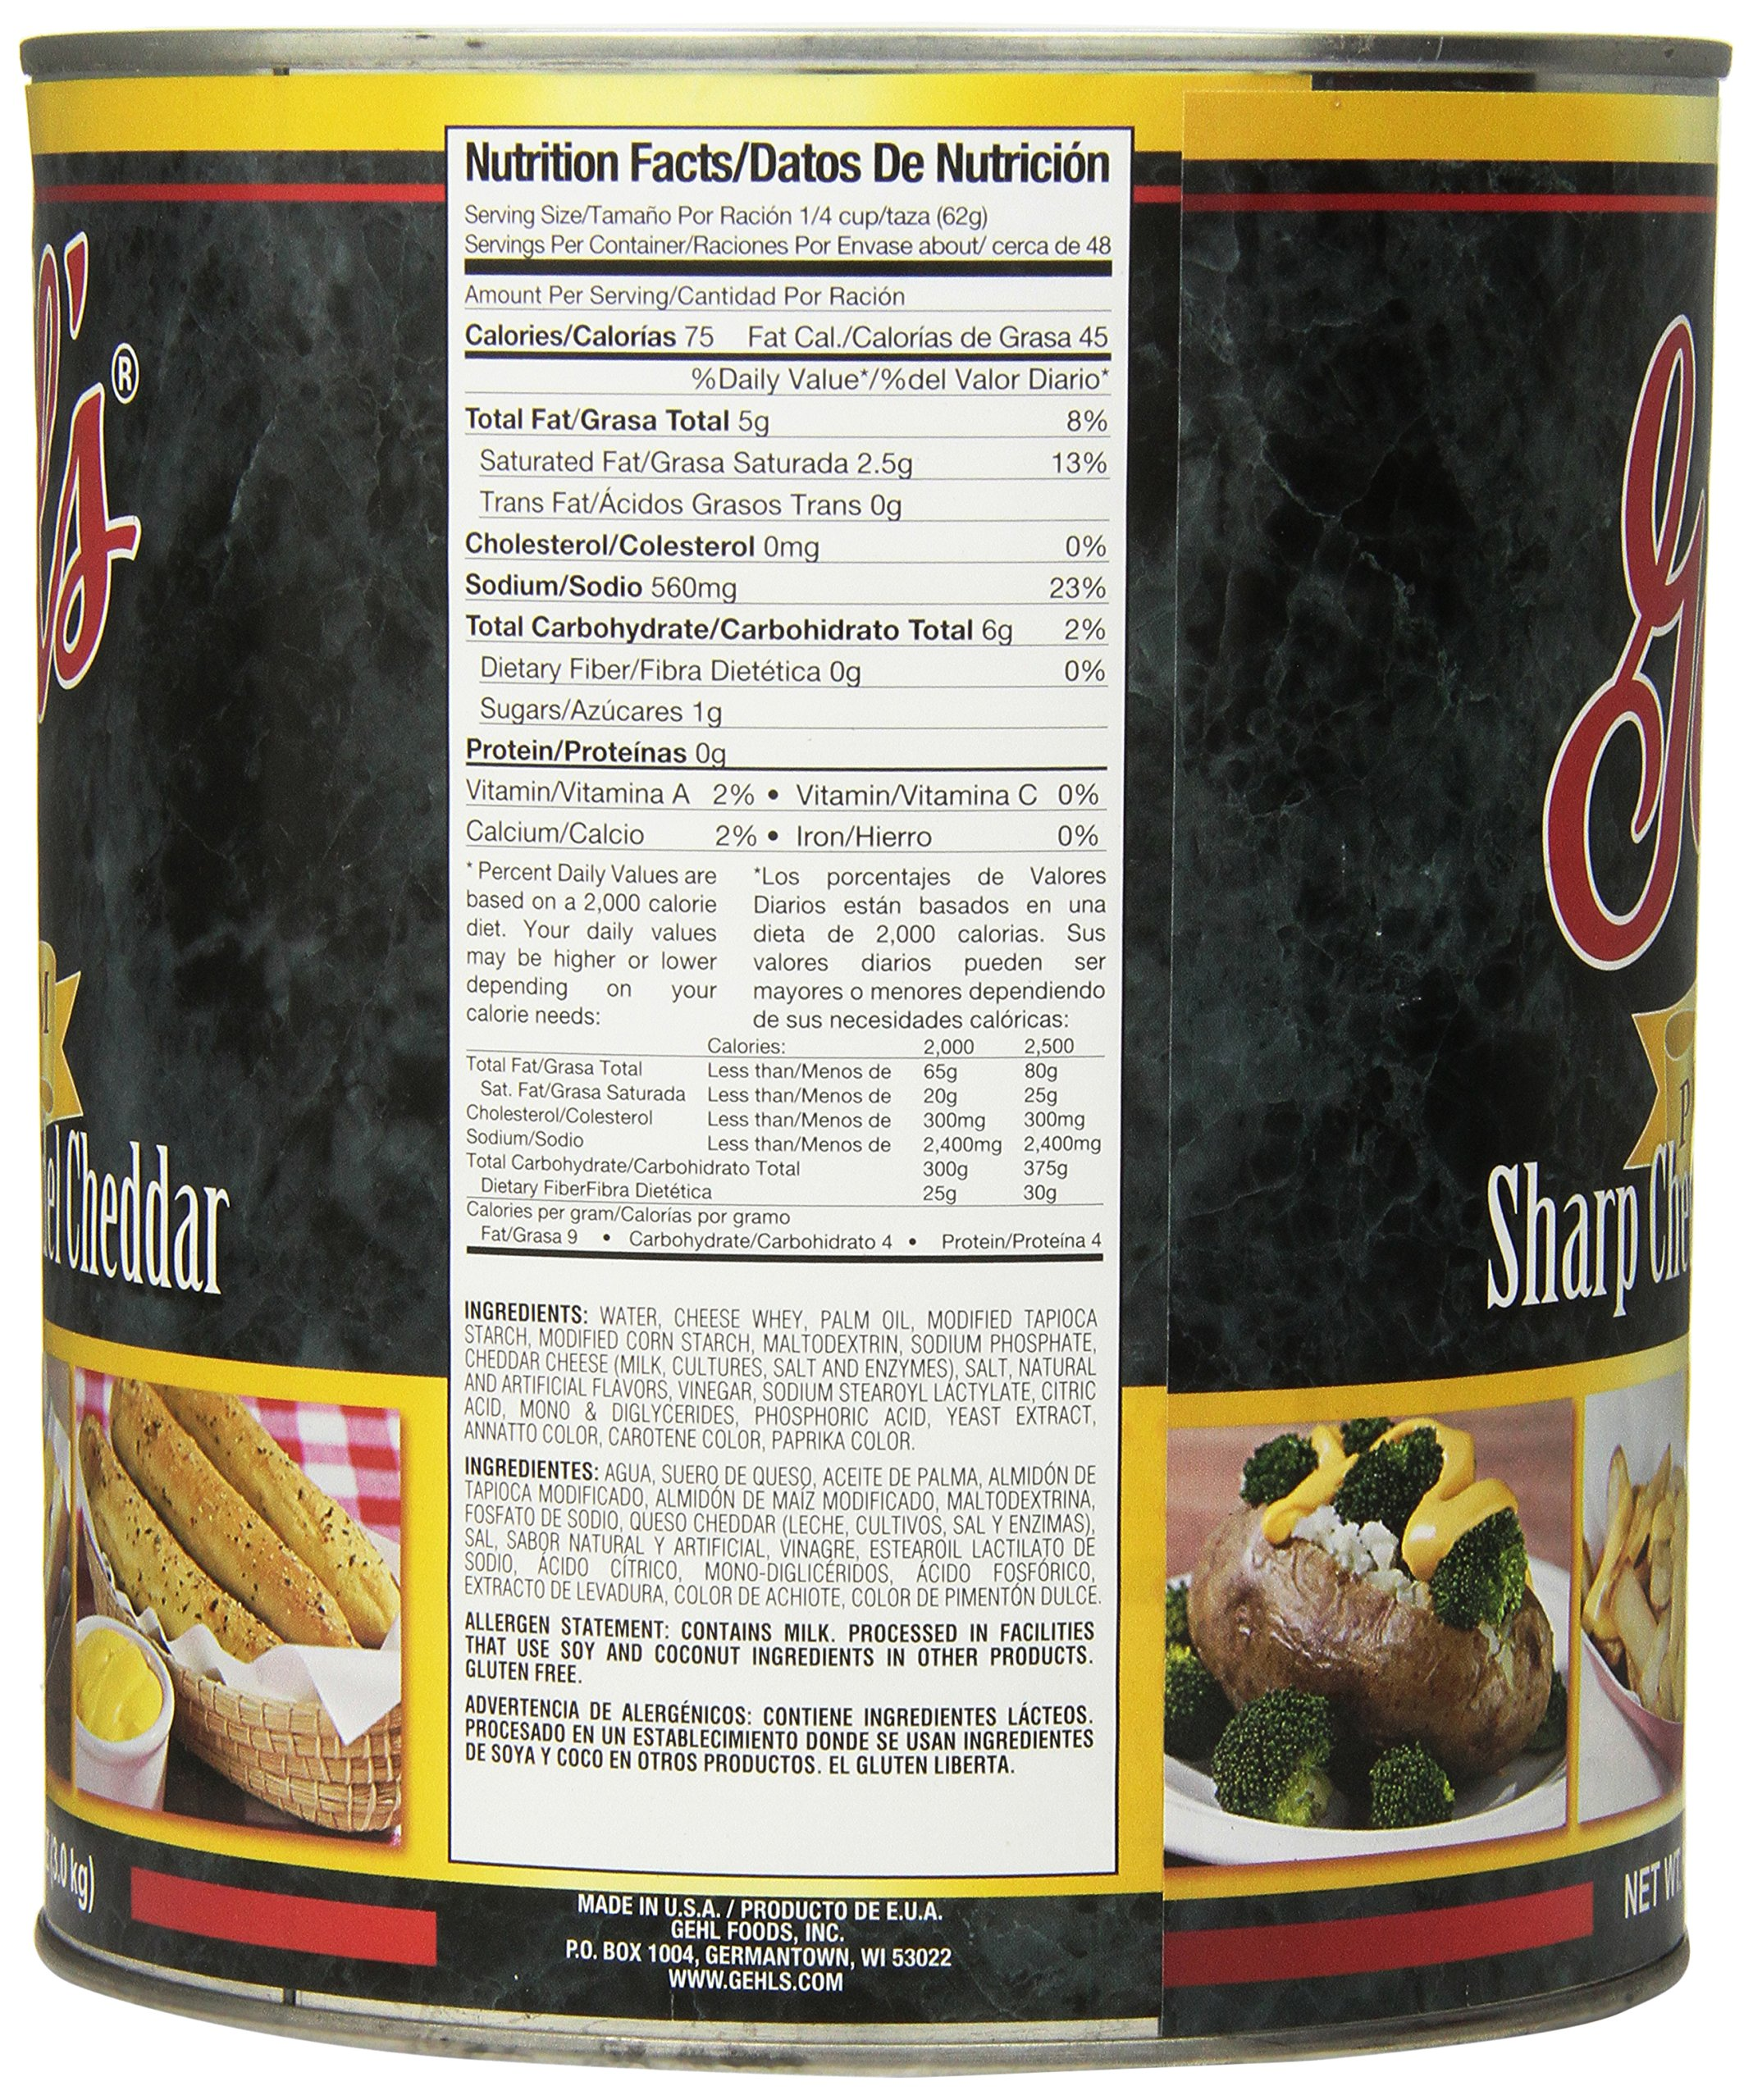 Gehl's Premium Sharp Cheddar Cheese Sauce, 106 Ounce by Gehl's (Image #1)